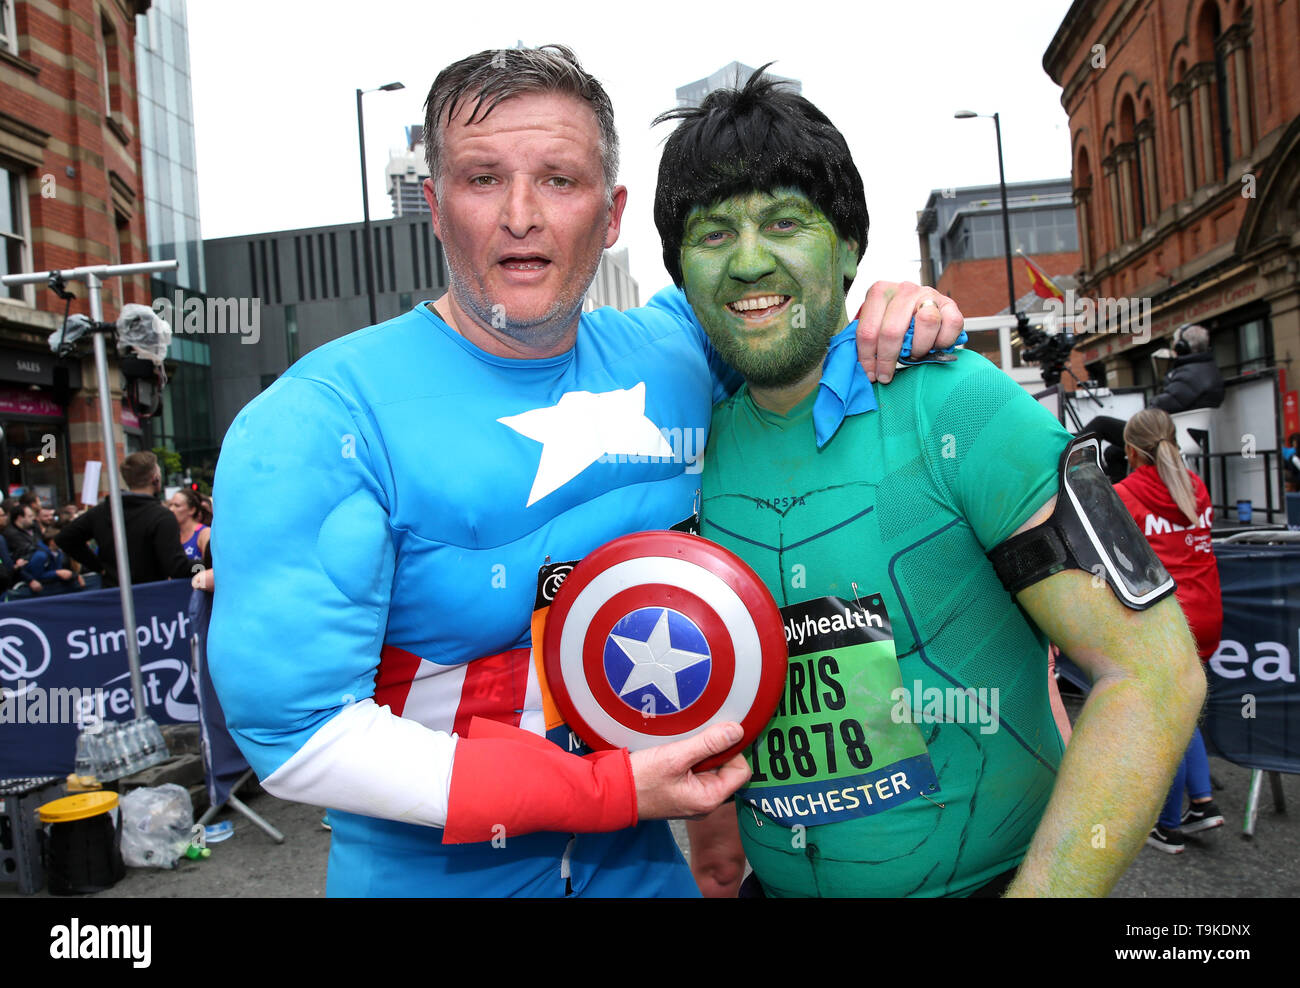 Runners in fancy dress after completing the Simply Health Manchester Run. Stock Photo